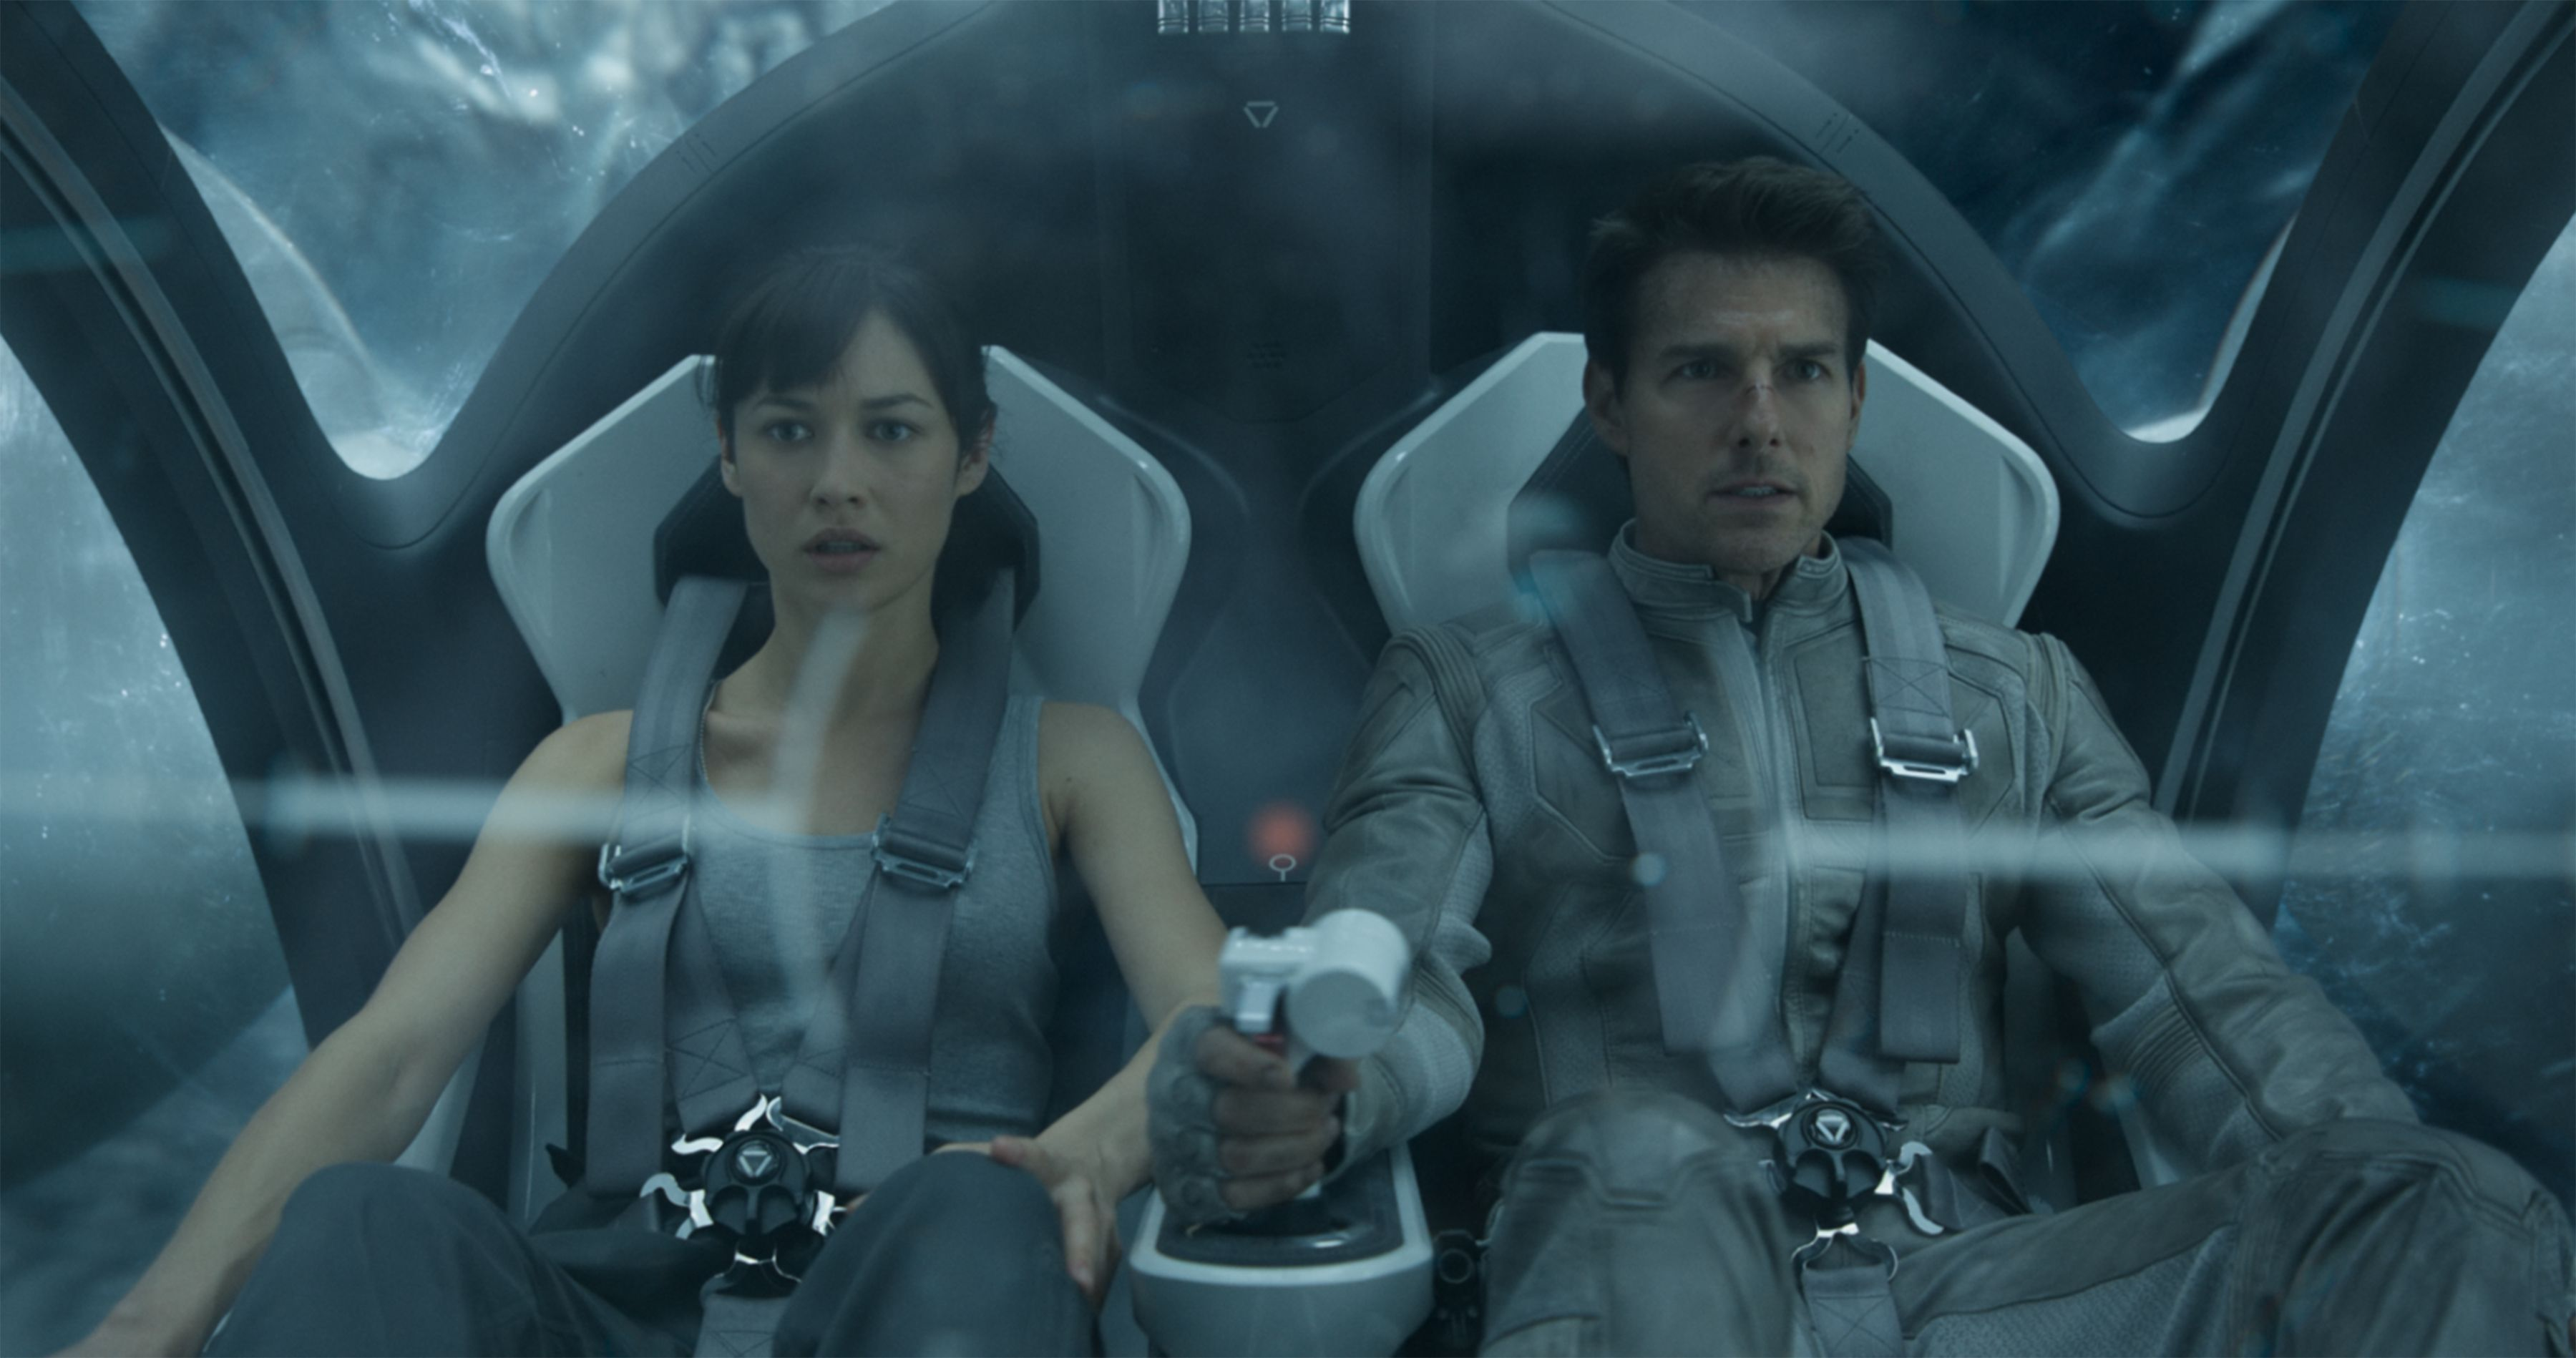 27 hi-res oblivion images featuring tom cruise, olga kurylenko and